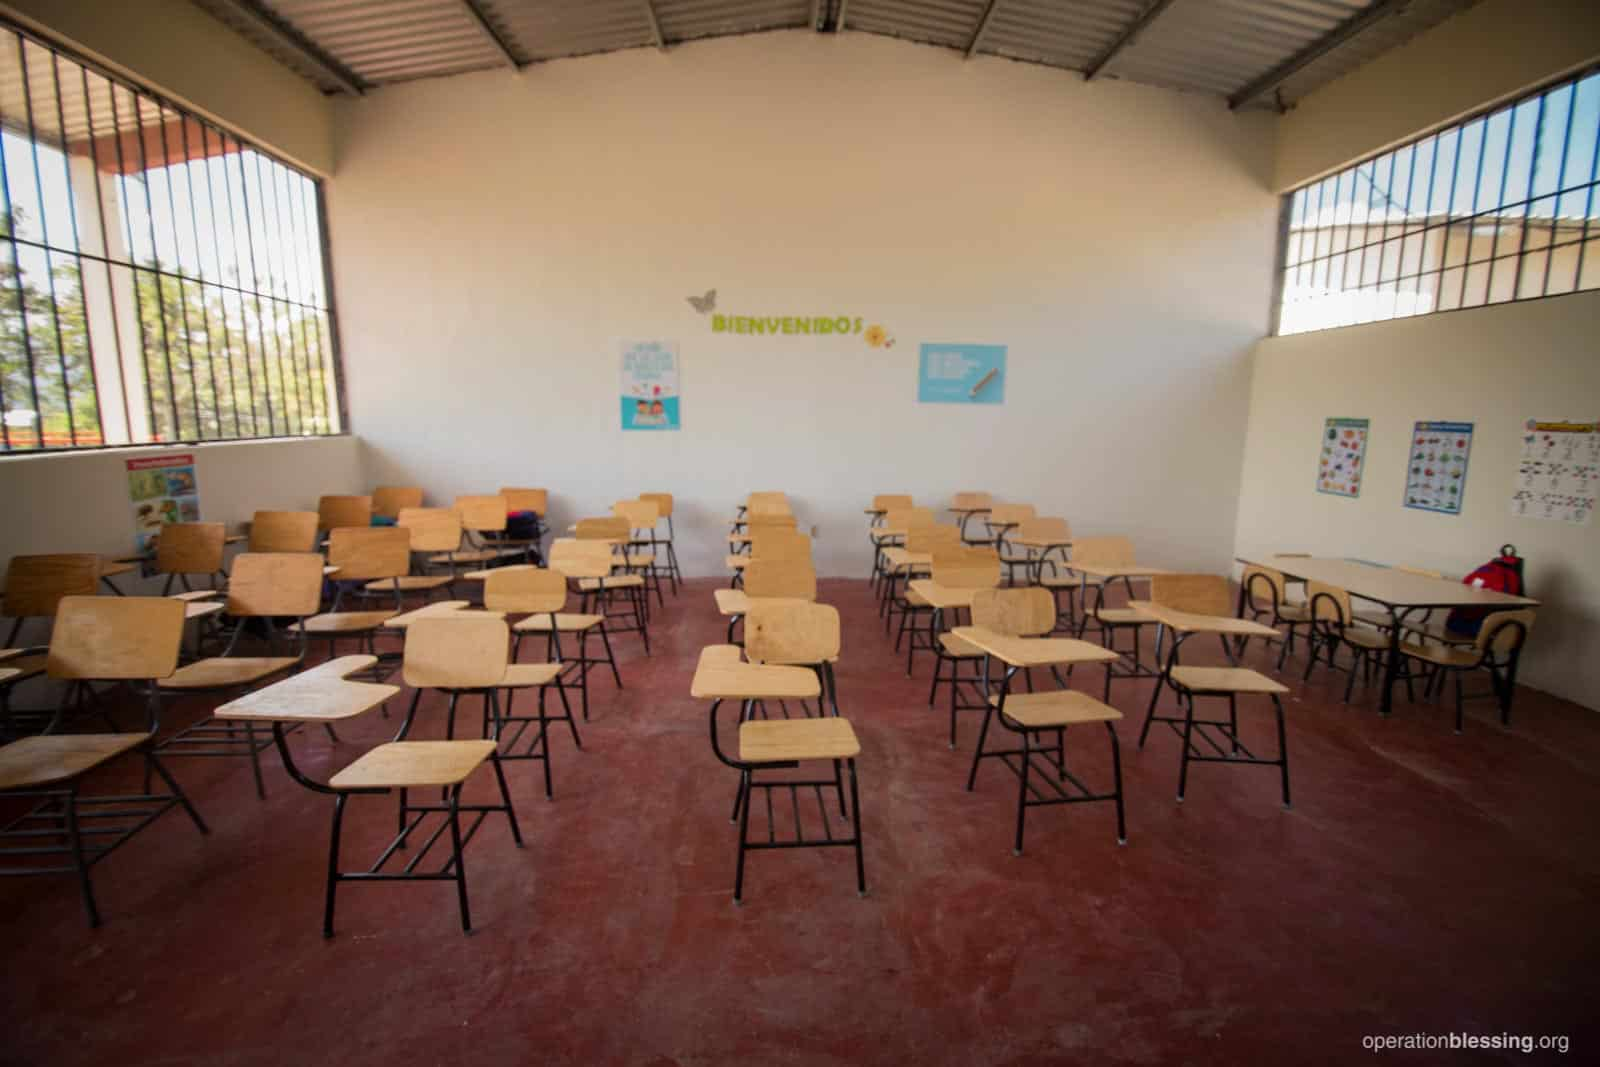 The bright and airy new classroom OBI built for a community in Honduras.